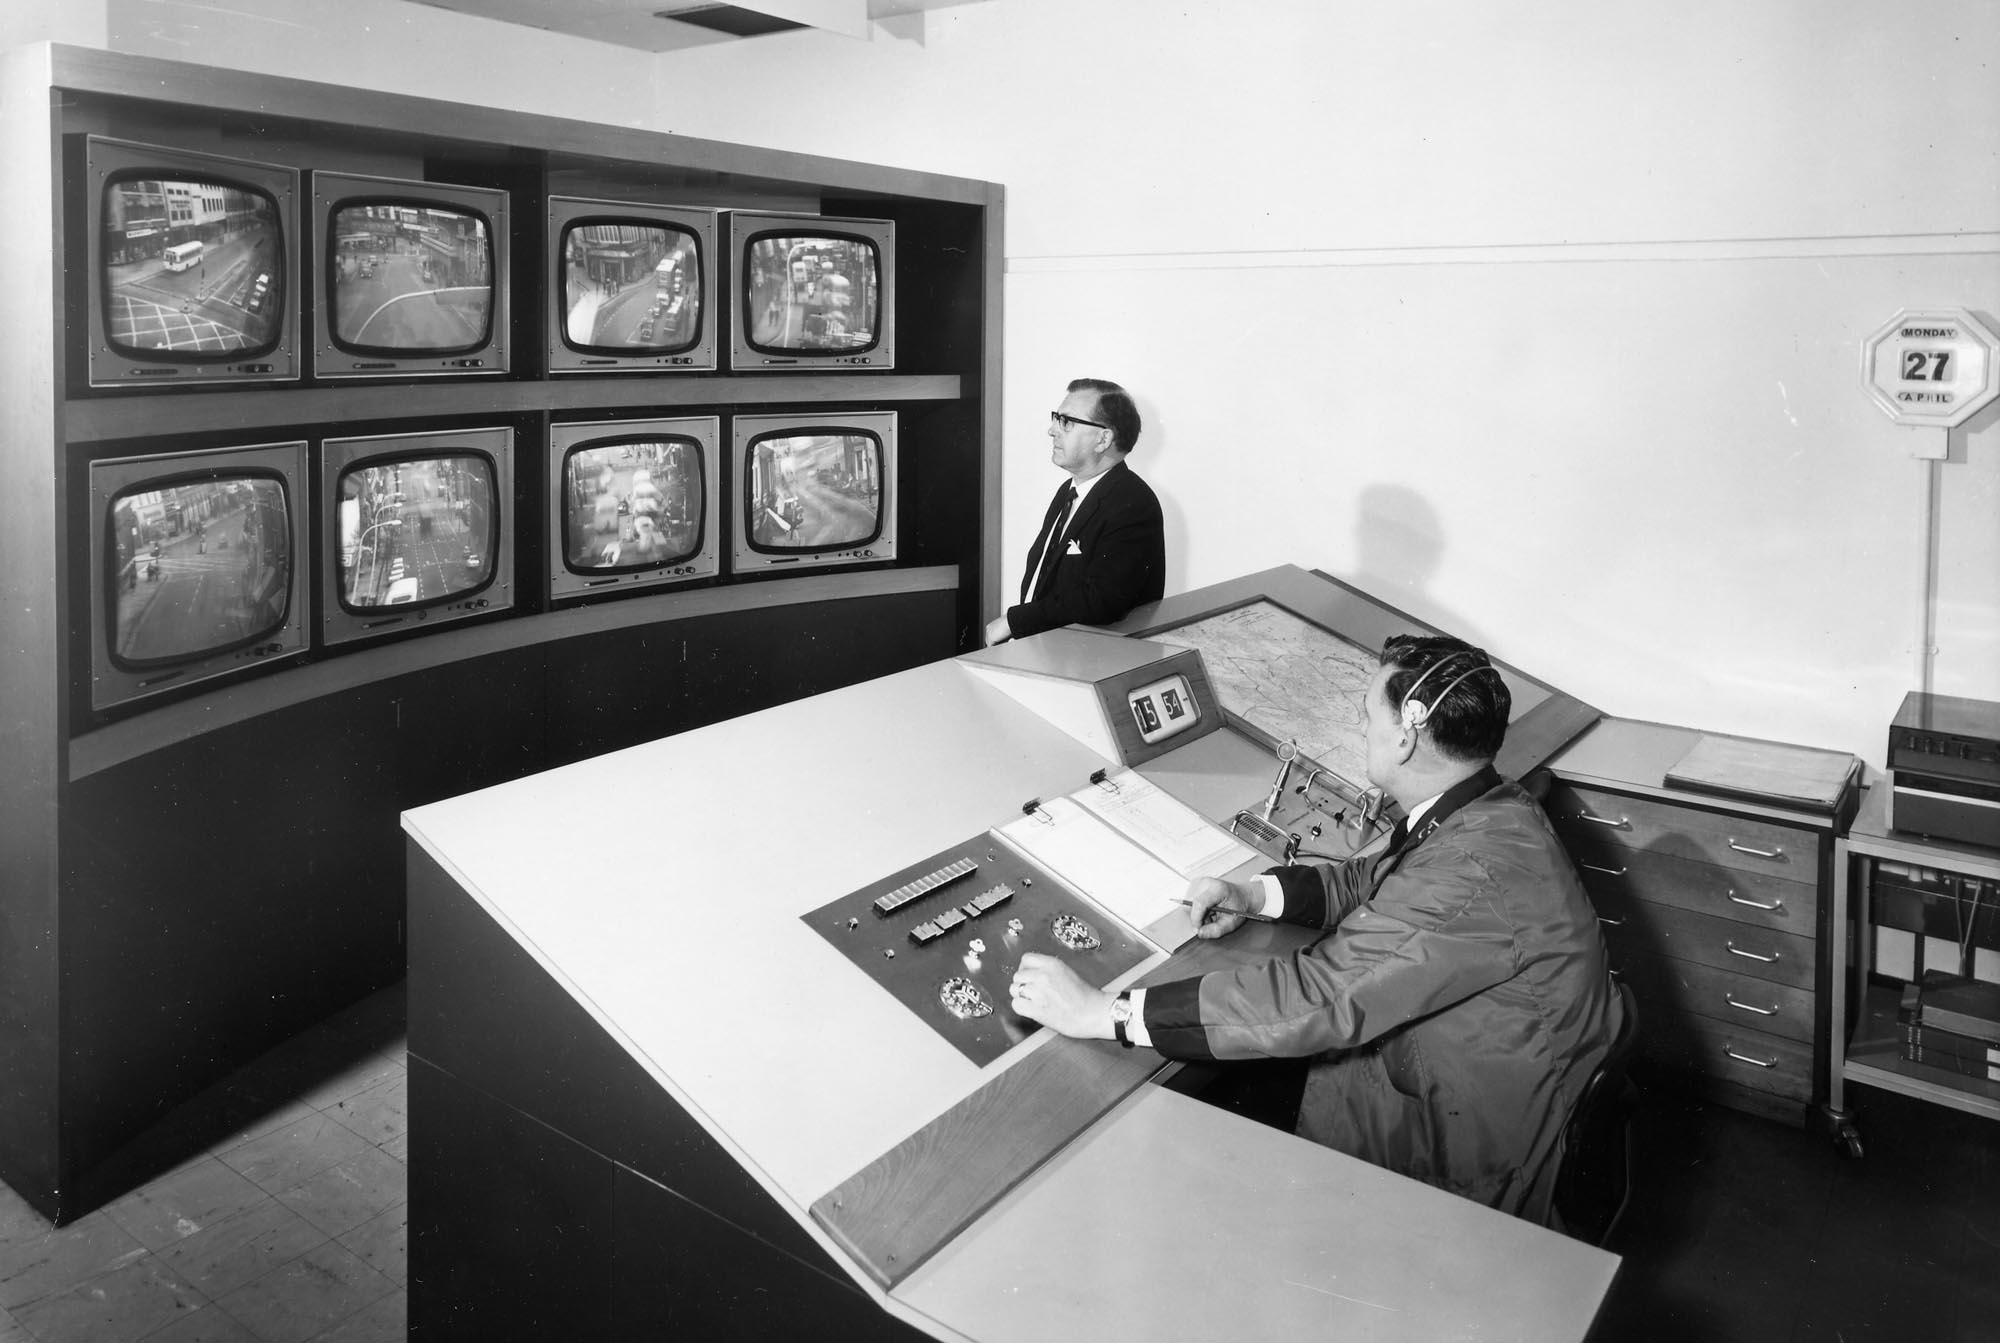 The control room with a bank of CCTV monitors - Leicester Transport Heritage Trust, Rob Haywood and Keith Wood